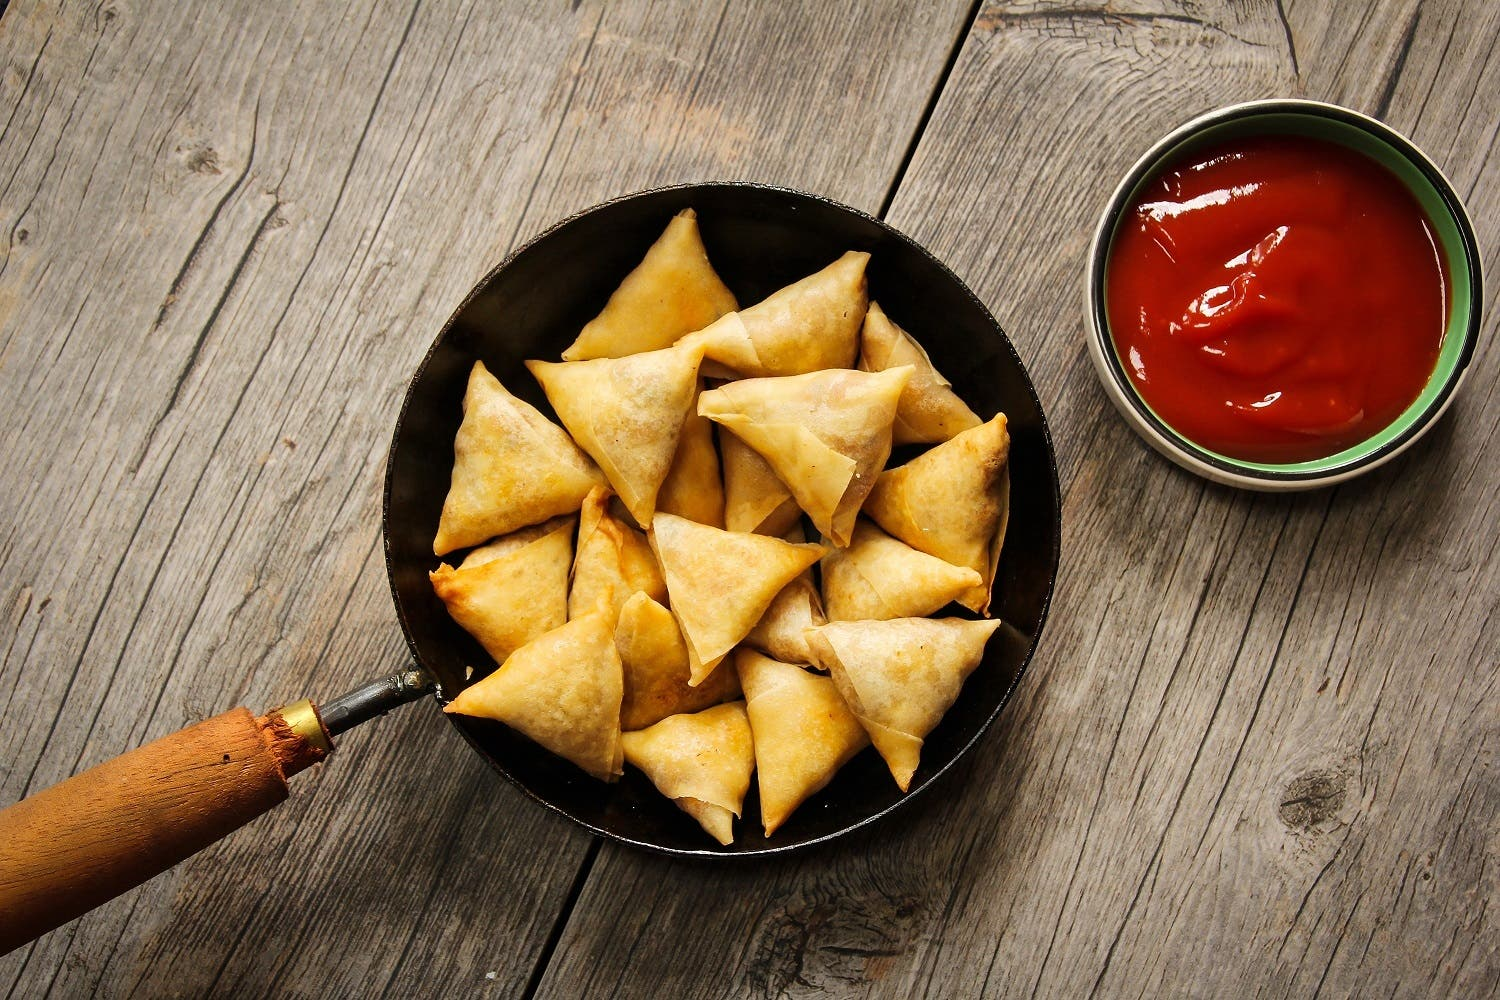 samoosa is a fried or baked dish with a savoury filling, such as spiced potatoes, onions, peas, lentils, macaroni, noodles, and/or minced meat (lamb, beef or chicken). (Shutterstock)